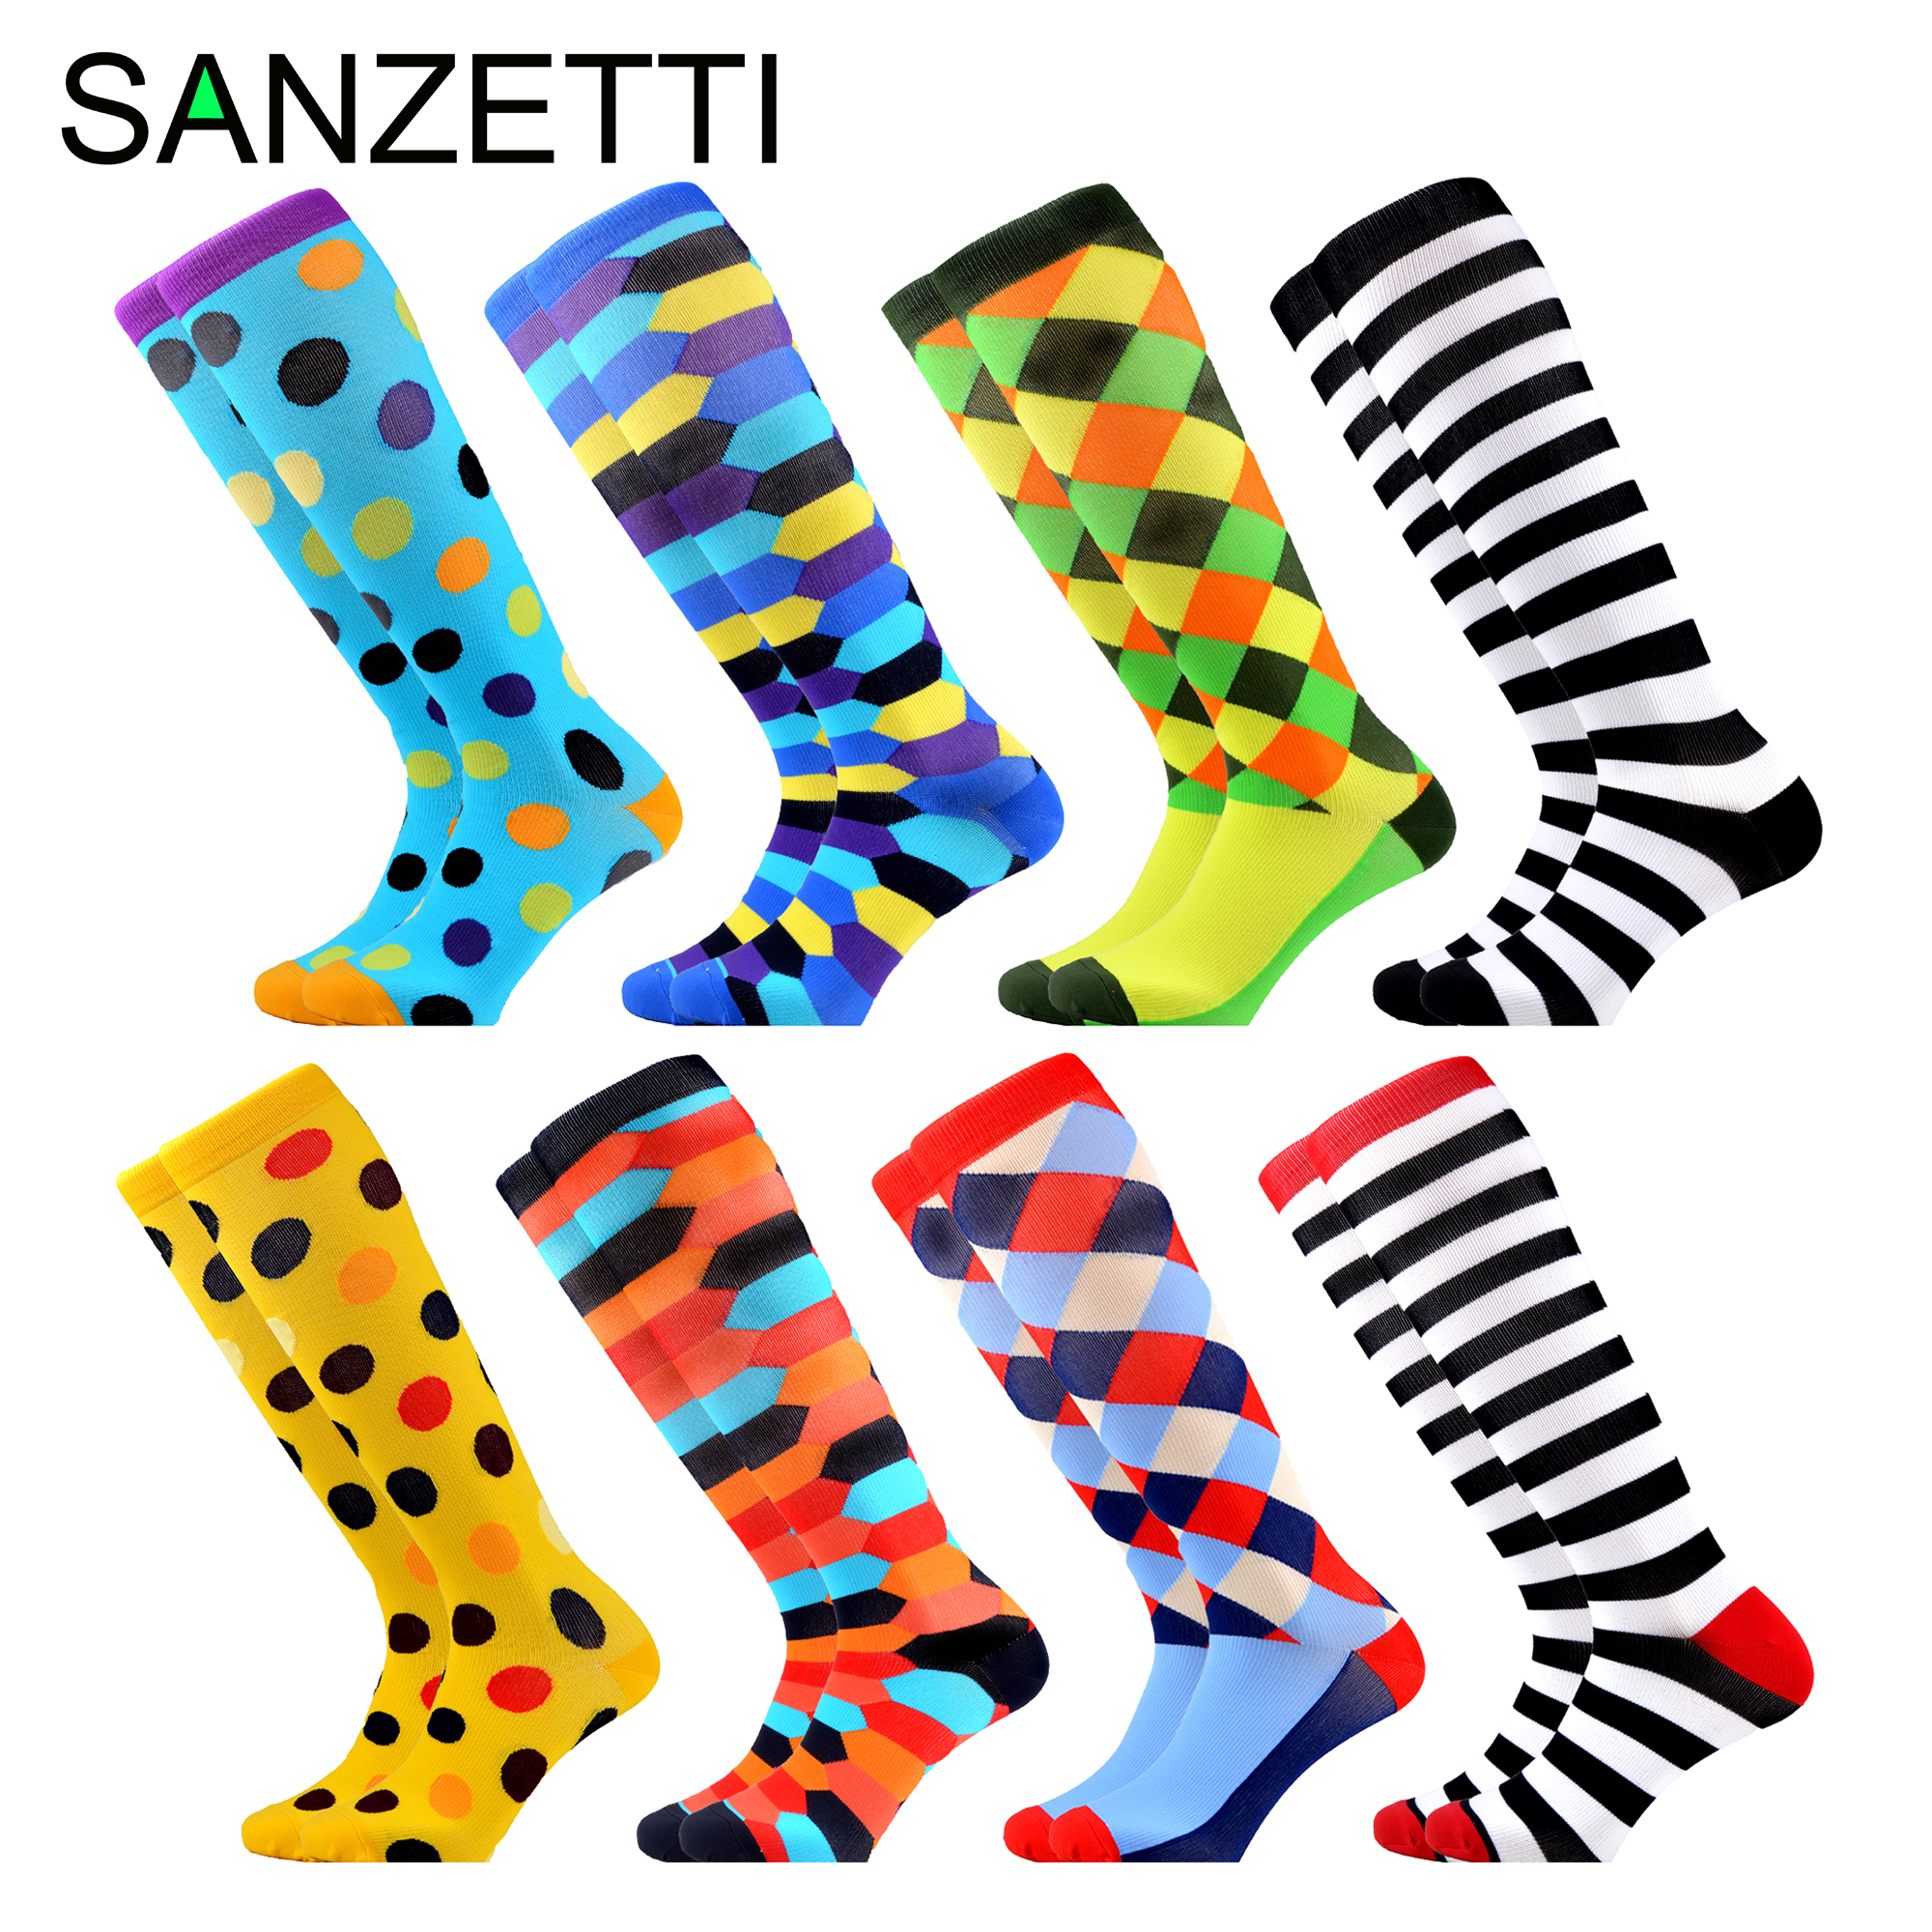 SANZETTI 8 Pairs/Lot Women's Colorful Design Leg Support Stretch Cotton Compression Socks Below Knee Anti-Fatigue Happy Socks